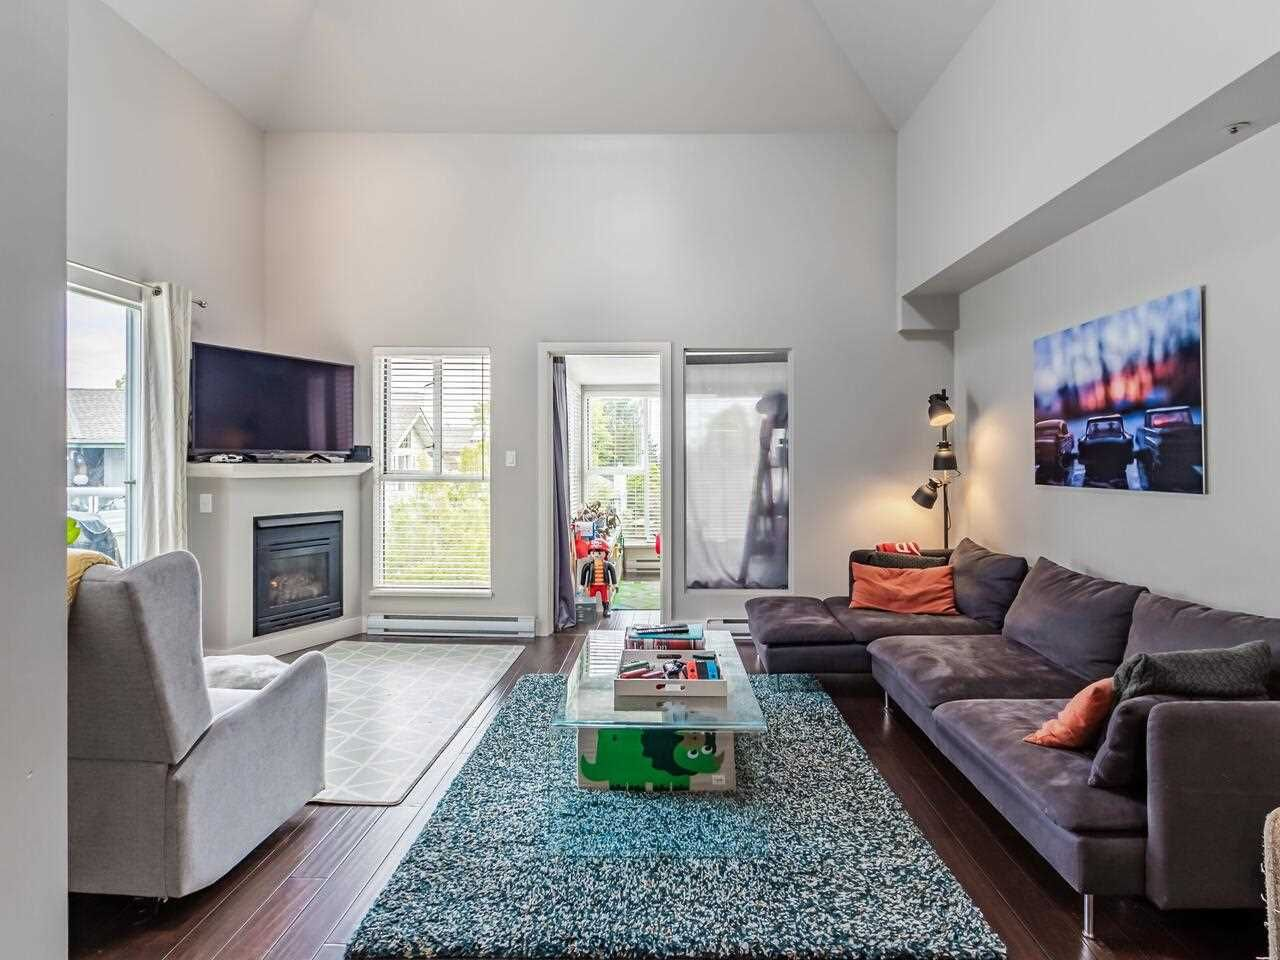 """Main Photo: 401 3480 MAIN Street in Vancouver: Main Condo for sale in """"Newport on Main"""" (Vancouver East)  : MLS®# R2575556"""